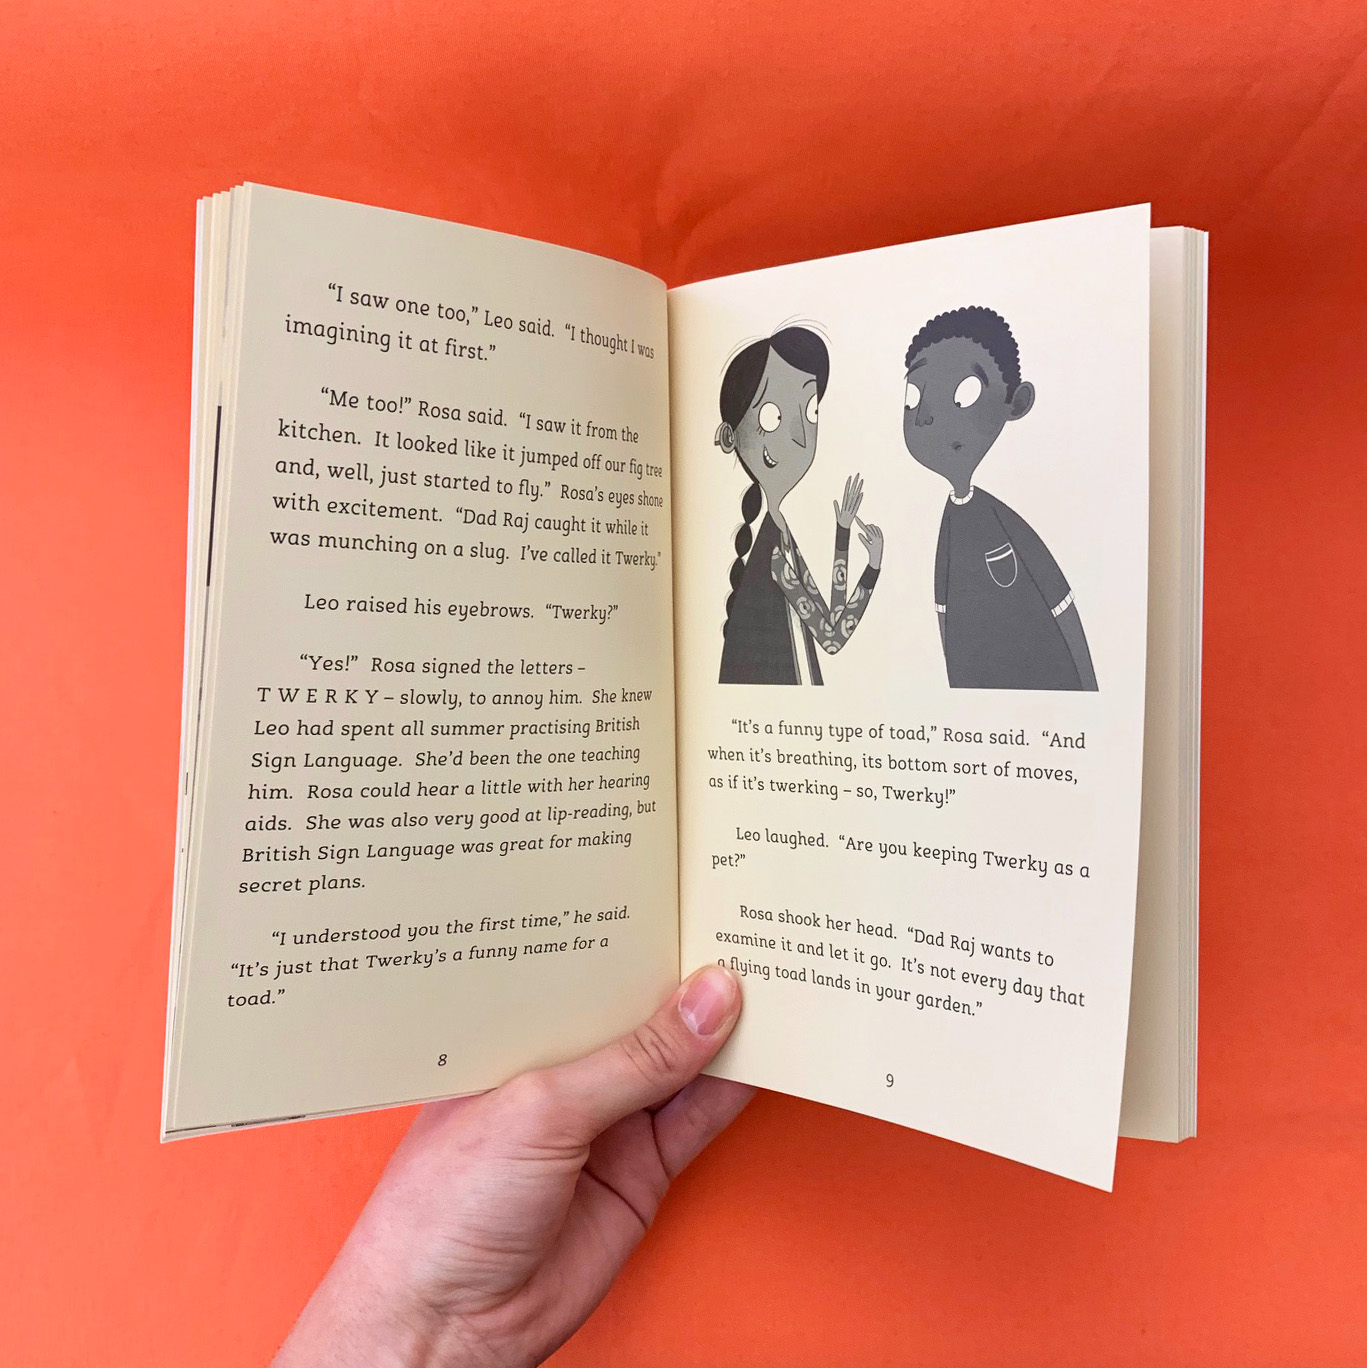 A photograph of a page spread from Toad Attack, featuring an illustration of Rosa signing